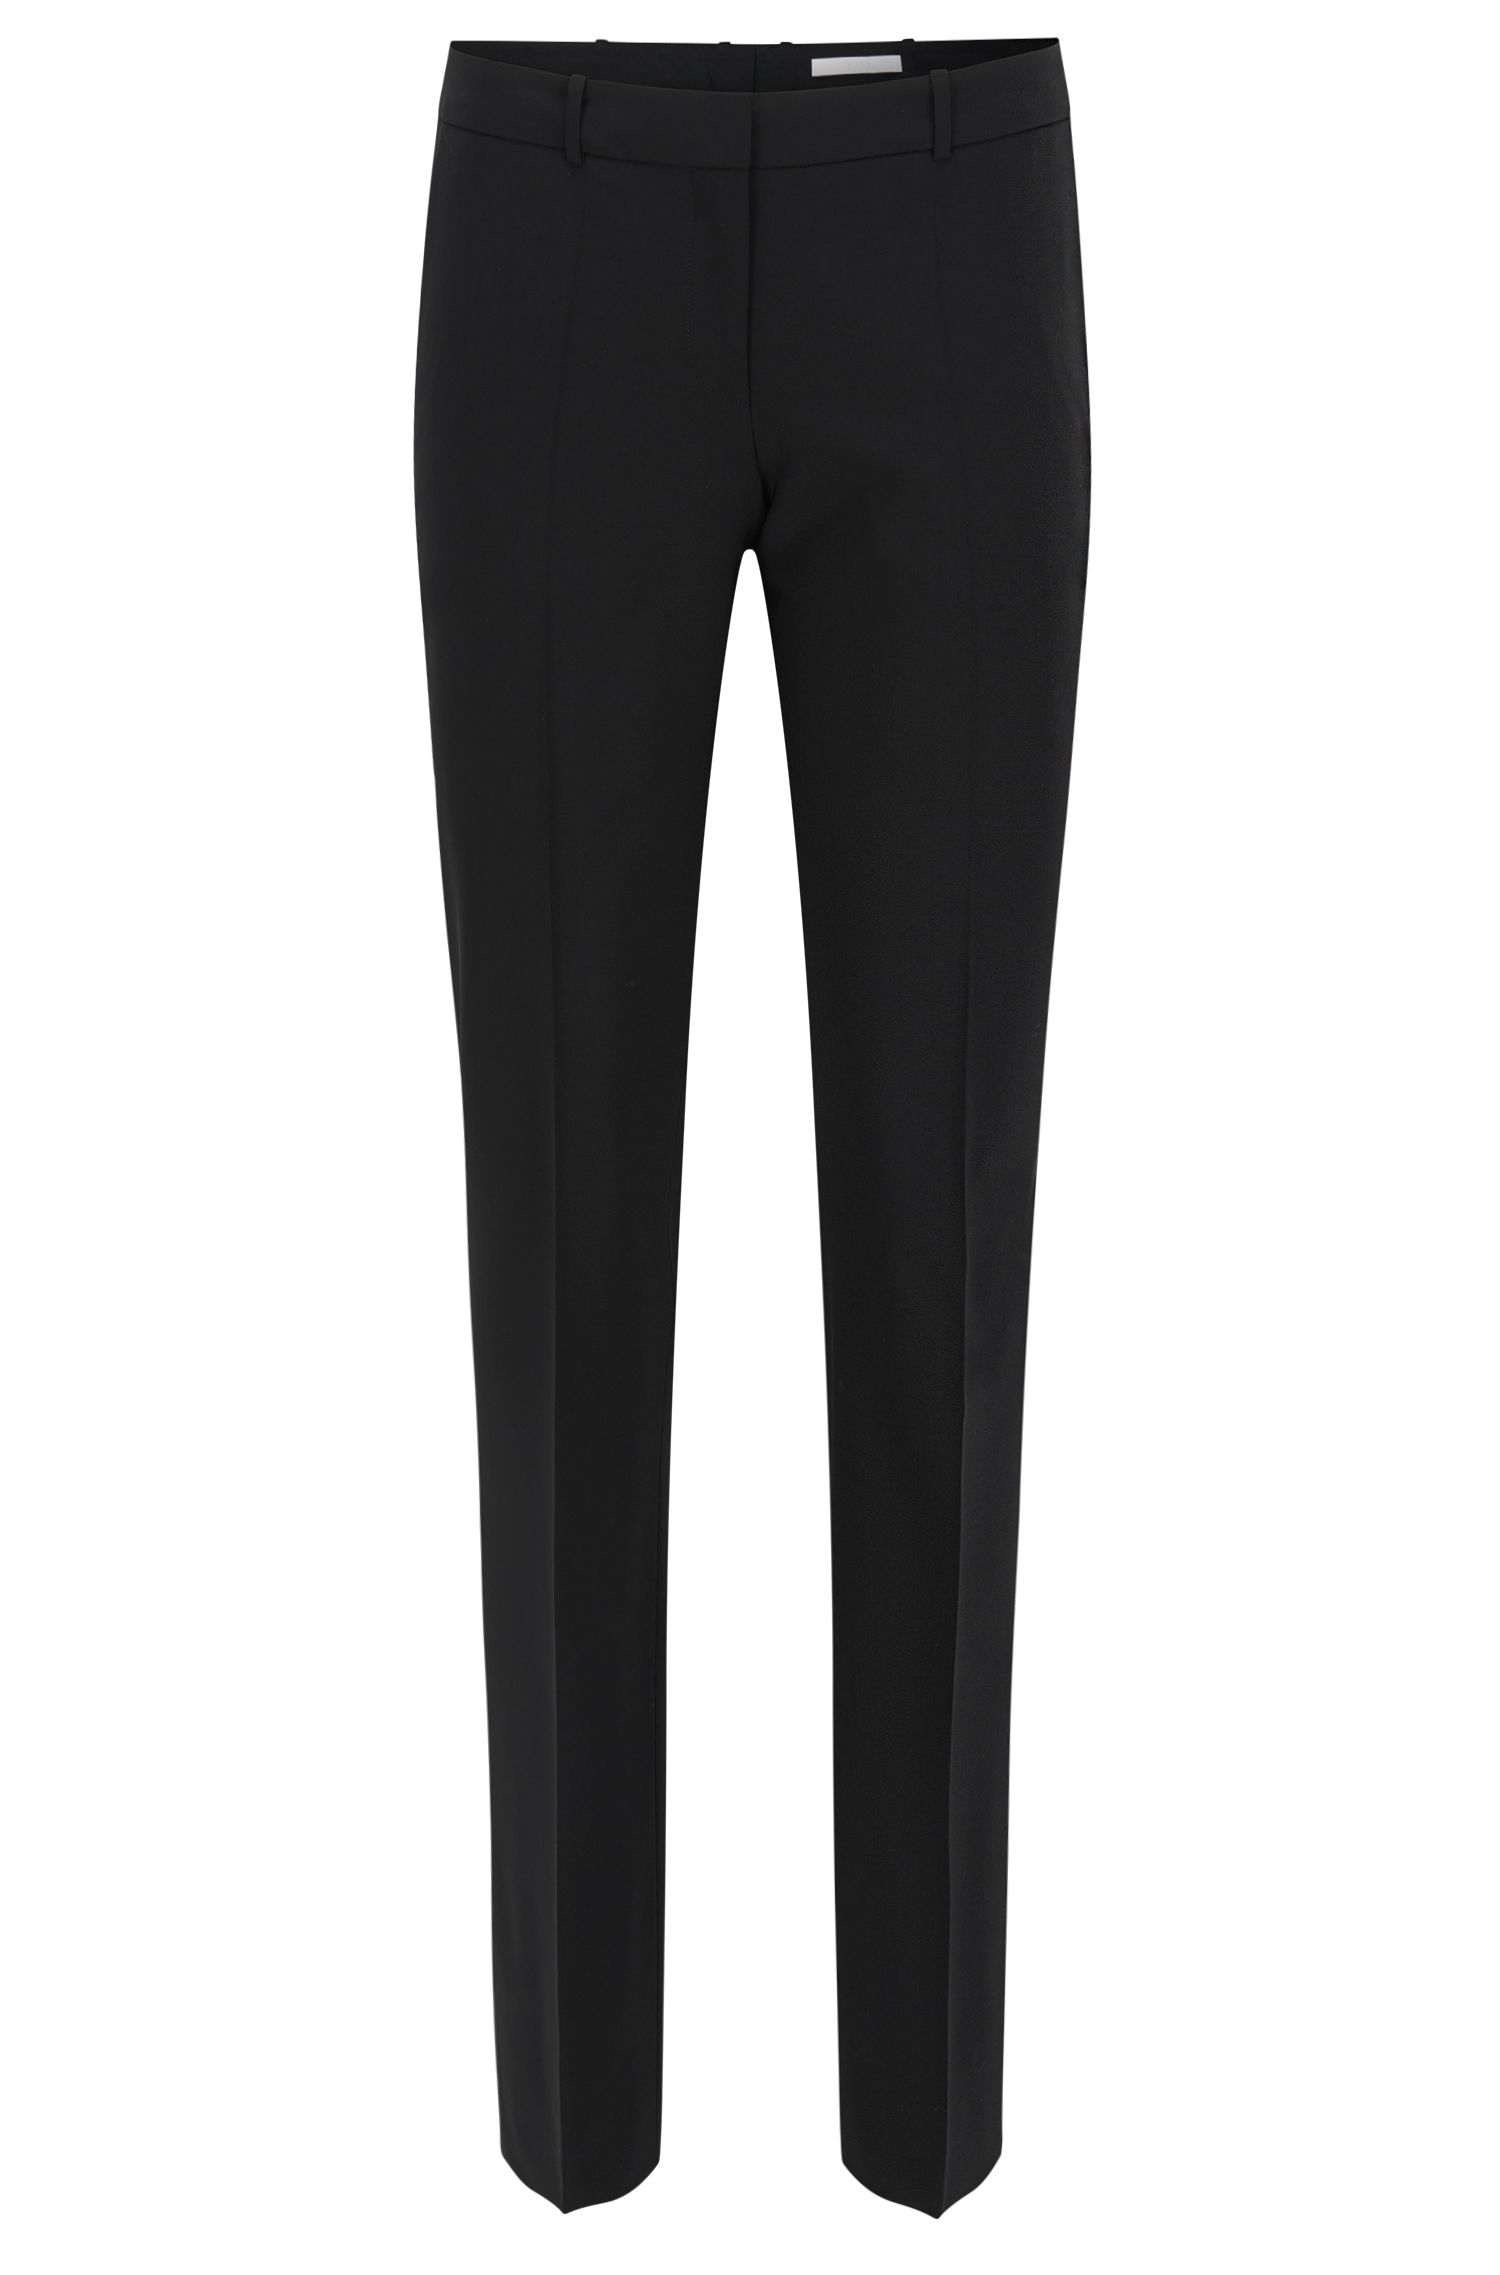 Pantaloni business straight cut in lana elasticizzata